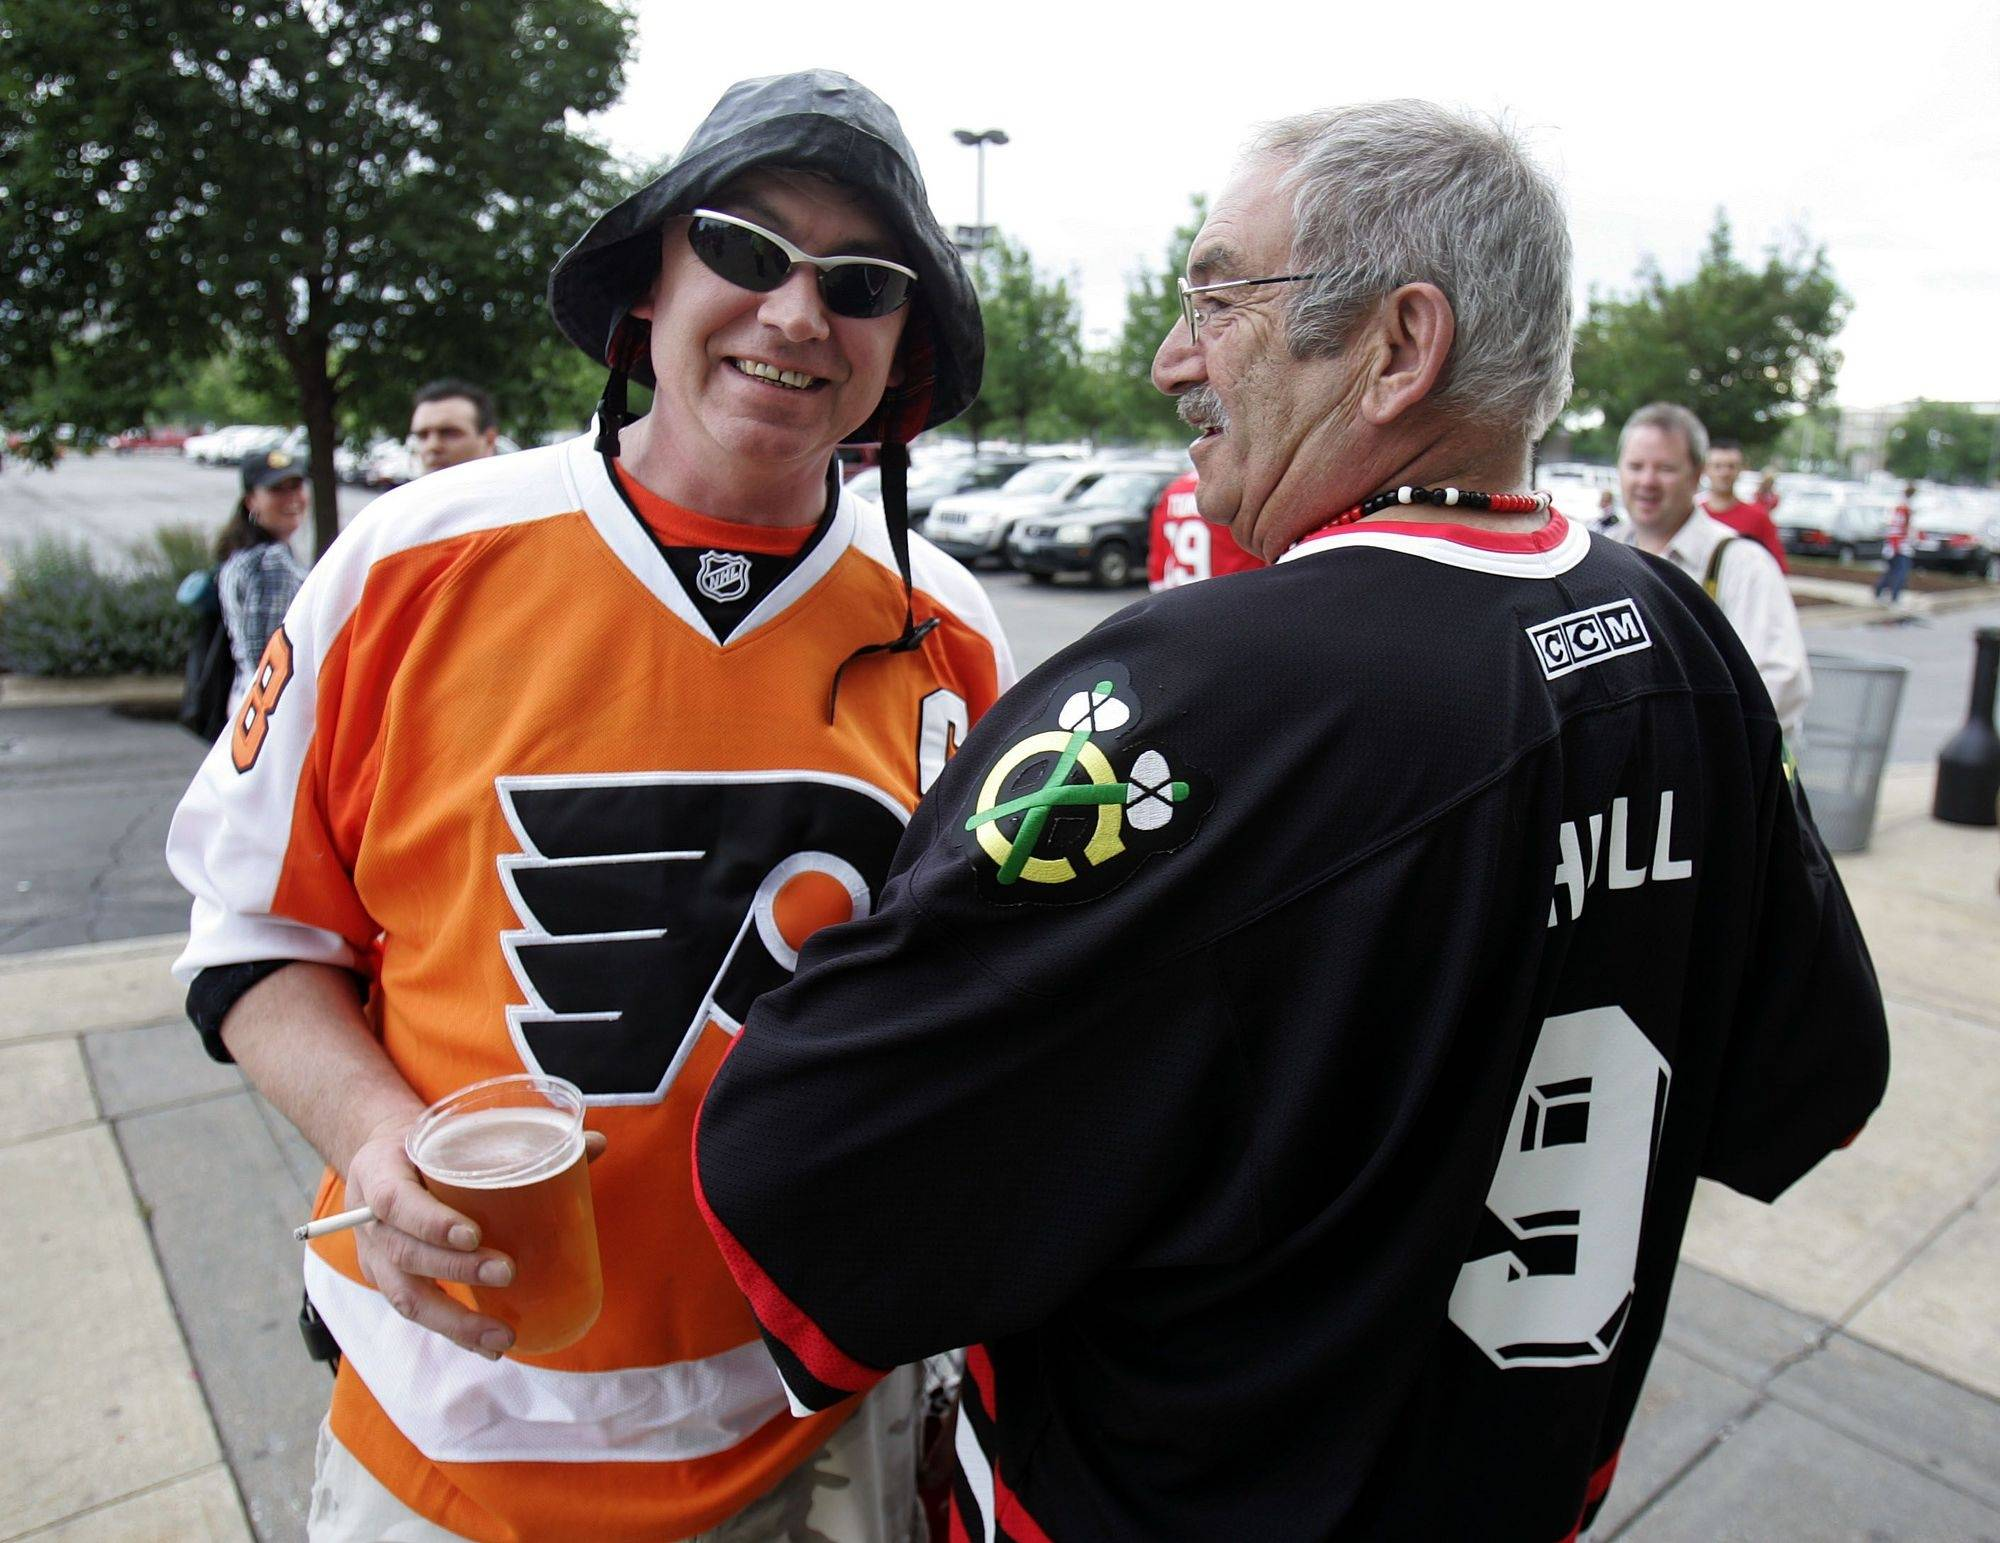 Todd Grouchy, left, and Wayne Bursey, both of Newfoundland, Canada hang out outside the stadium in their opposing uniforms prior to game 5 of the Stanley Cup Finals at the United Center in Chicago Sunday.